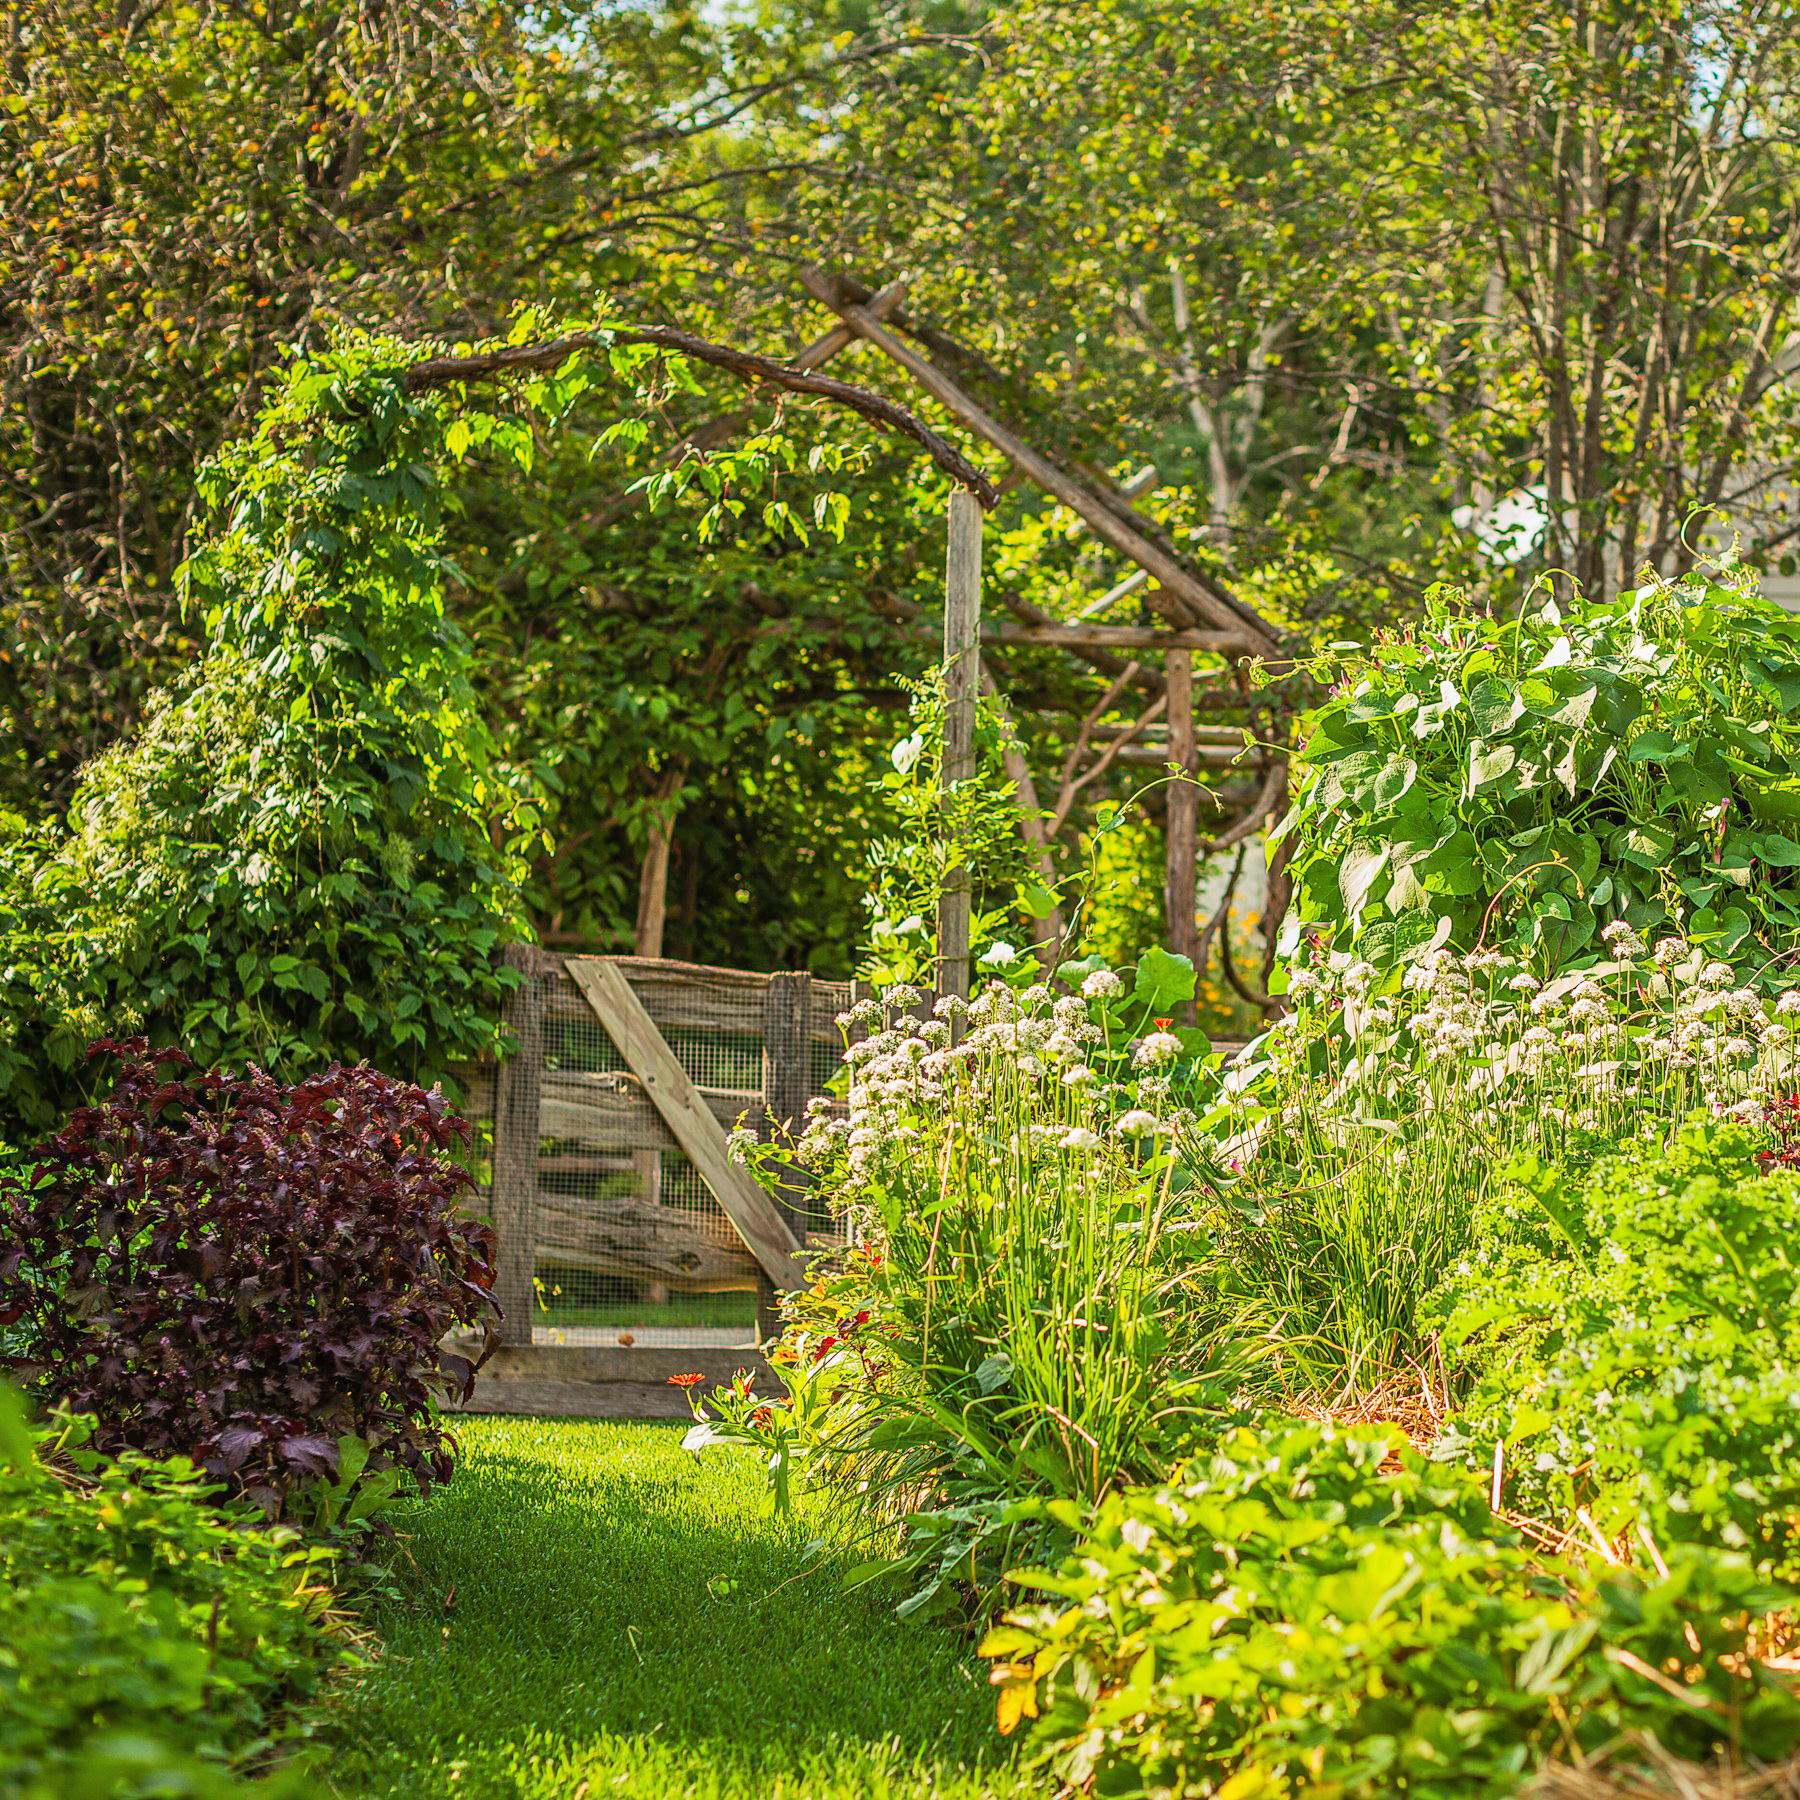 5 steps to better garden health